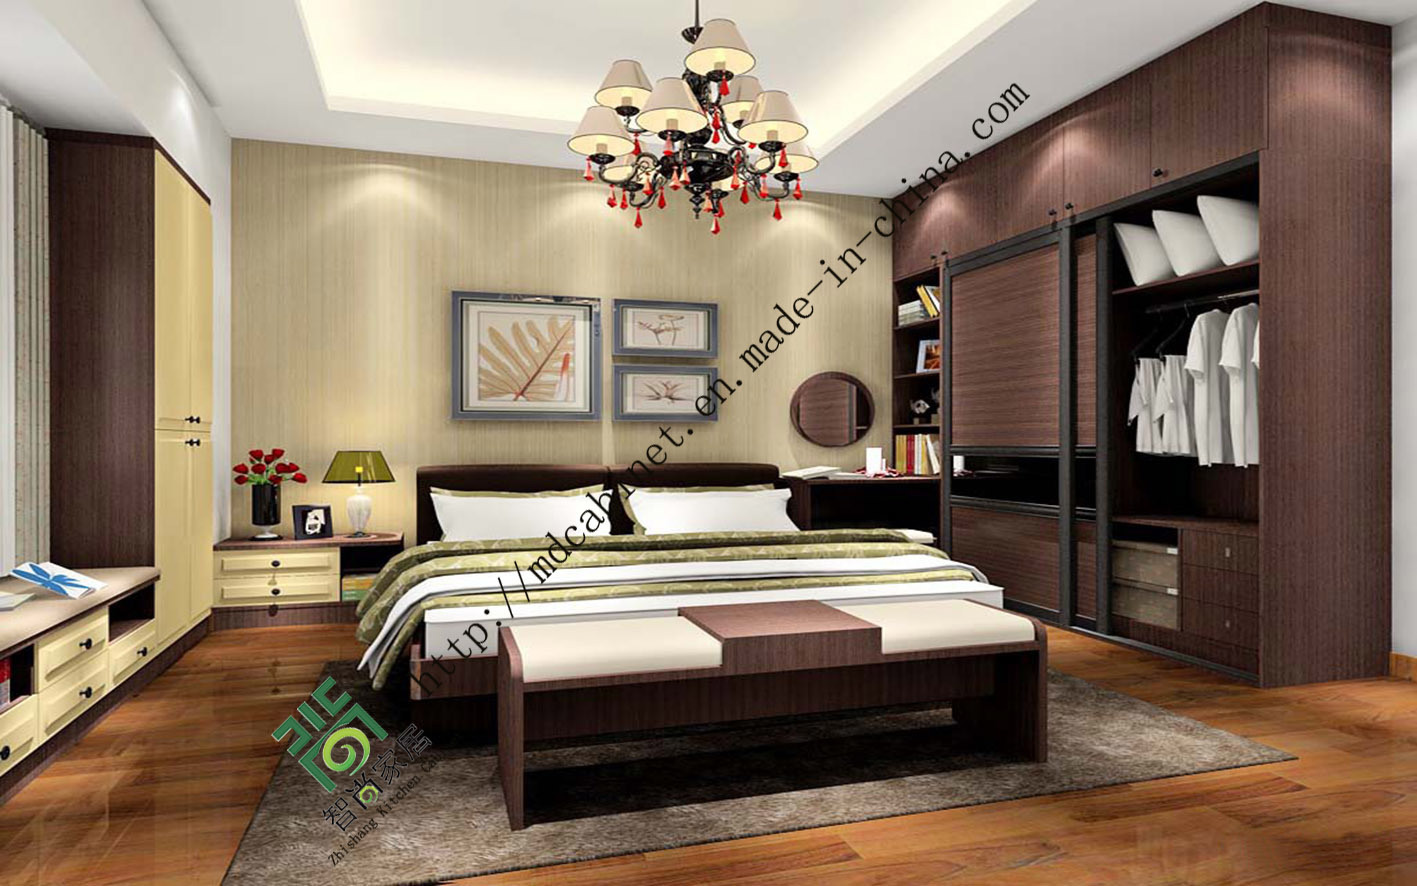 China 2017 new style bedroom furniture naturalistic style for J furniture style 1250